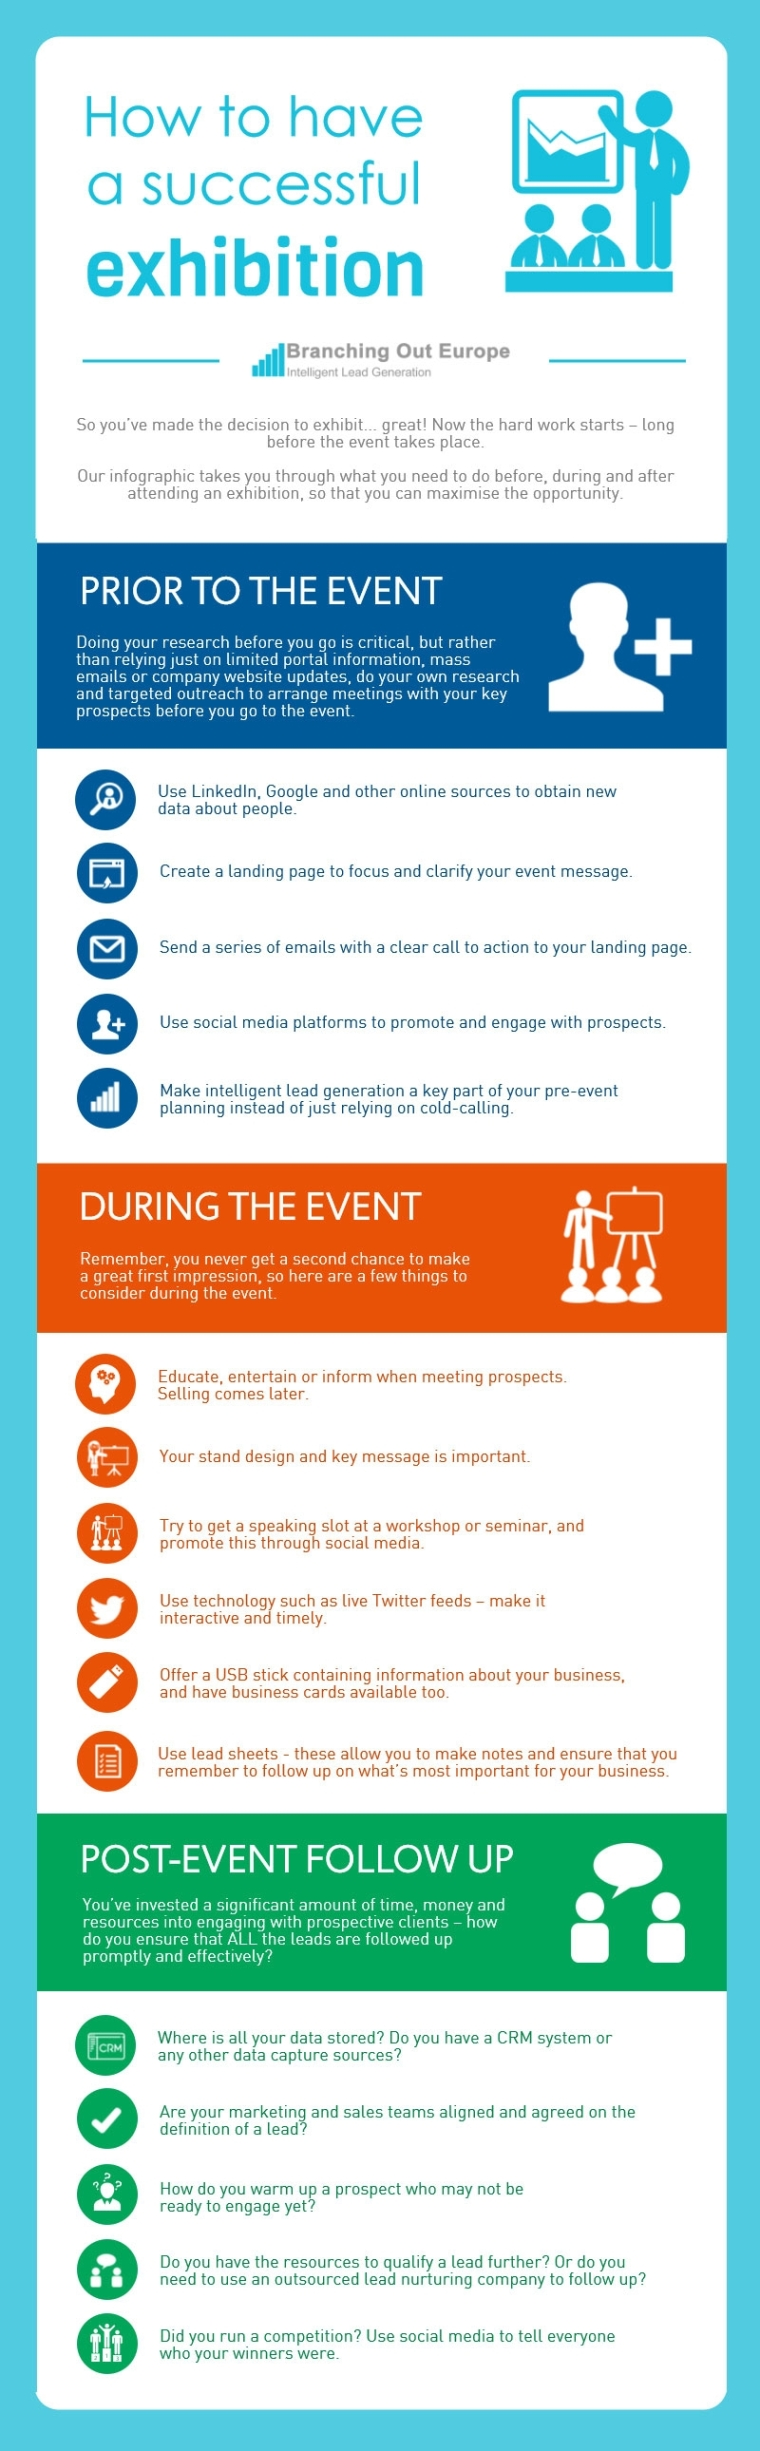 how-to-have-a-successful-exhibition-b2b-marketing-infographic